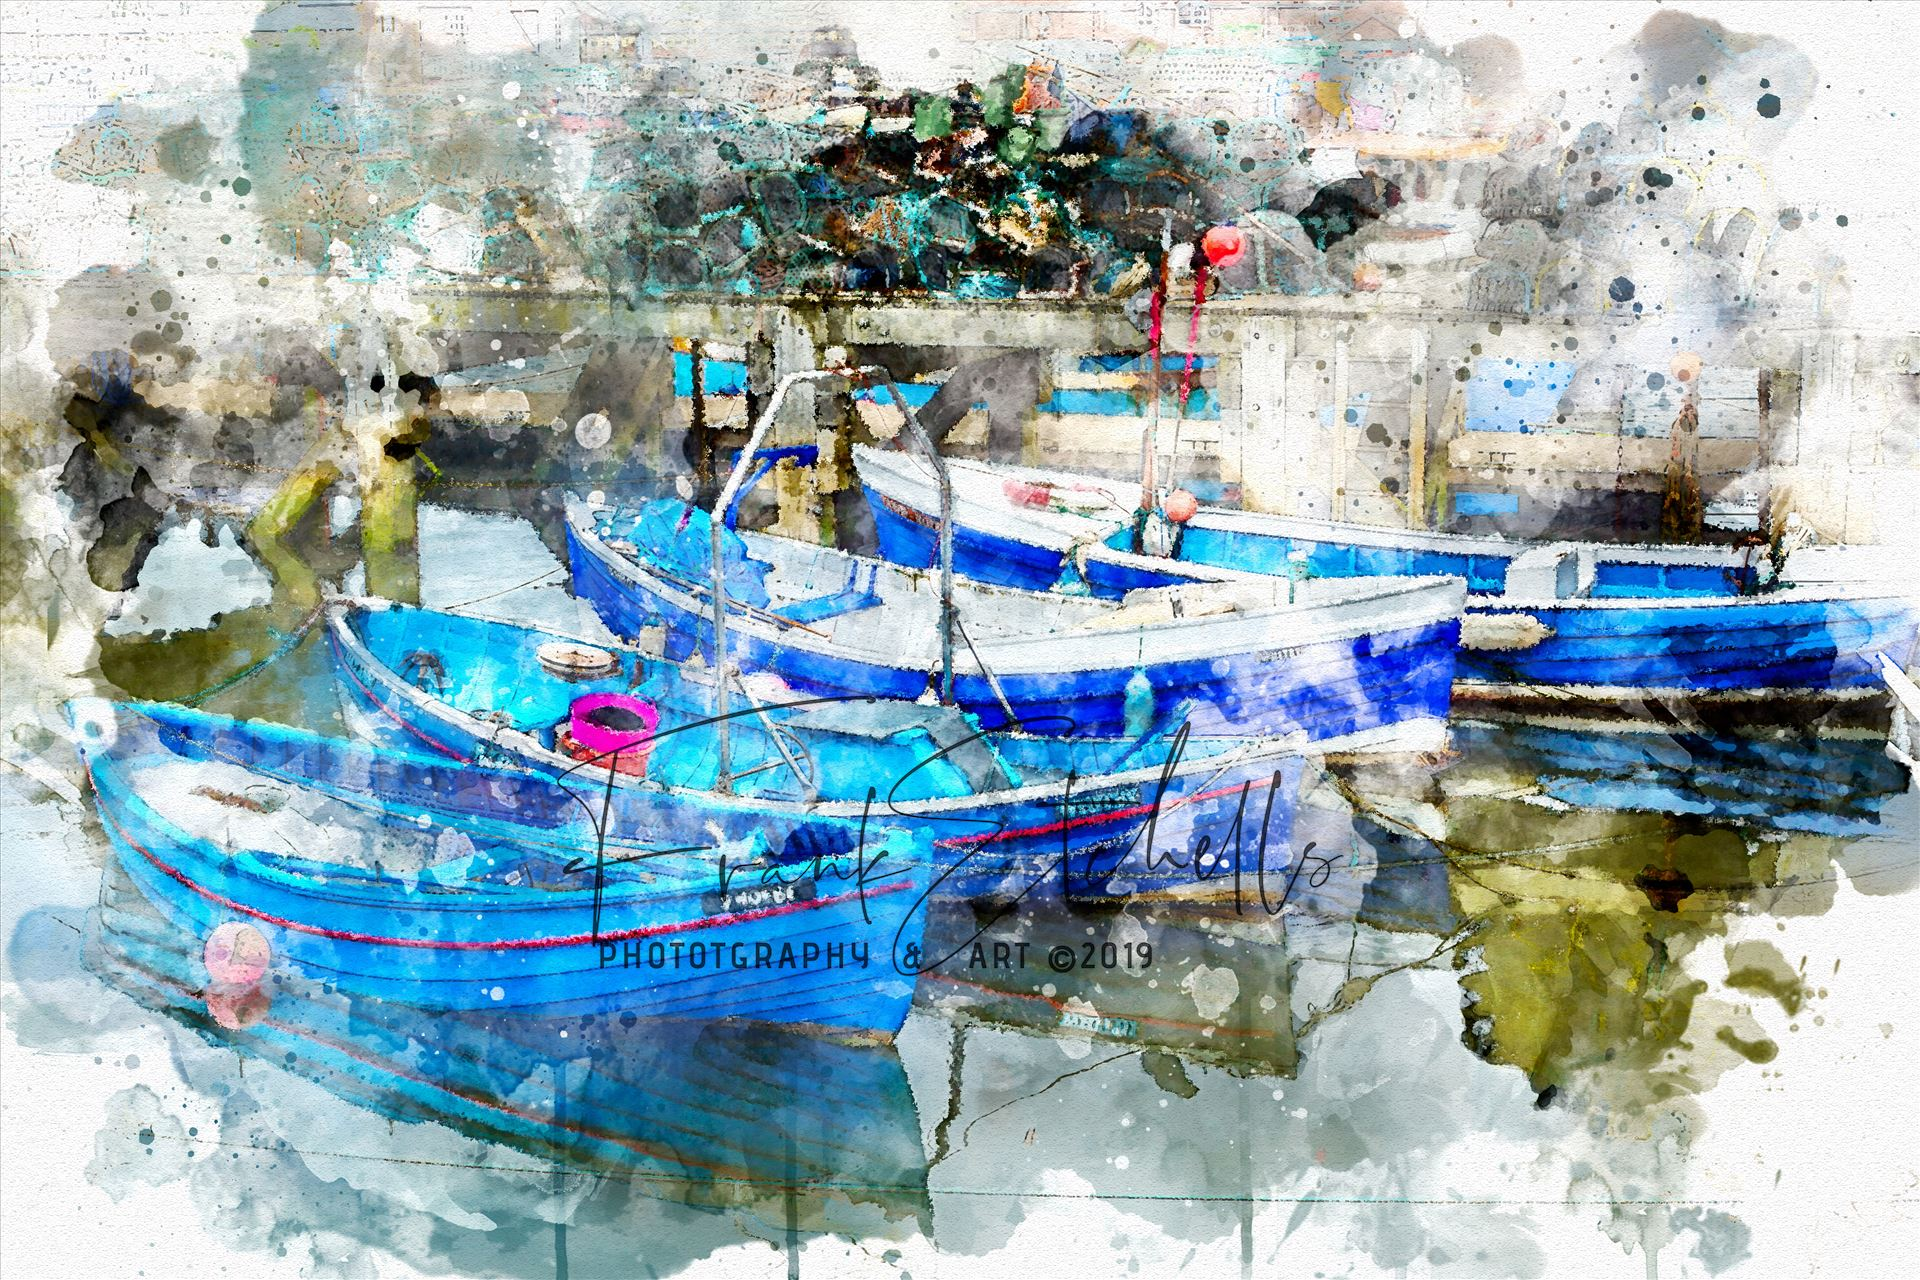 "Four Tethered Boats Whitby A ""Watercolour"" digital conversion/rendition of an image taken in 2012 on a visit to Whitby, Yorkshire in 2012. A walk through the town brought us to the harbour quay side and these tethered boats, colourful and clean, nicely reflecting in the water..."